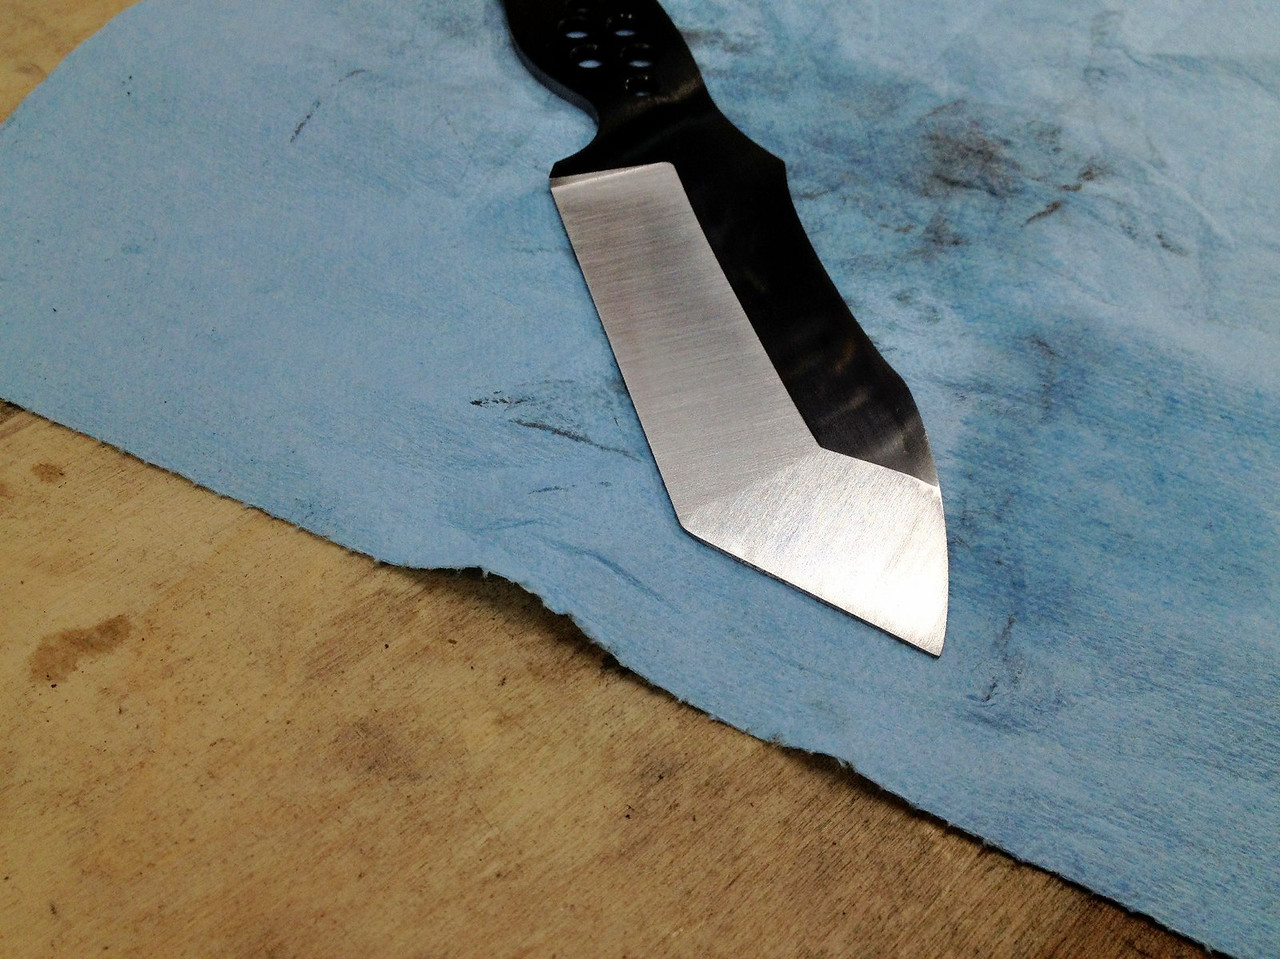 So I got a second wind and headed back out to the shop to regrind the tip of this morning's knife.<br /> <br /> It was a bit of a roller coaster.  At one point I had mucked up the tip, the main bevel, AND the flats.<br /> <br /> At that point I had nothing to lose, so I put a 60-grit on the KMG and went to work.  I was able to get the flats and main bevel repaired.  When it was time to grind the tip, I turned the KMG down to 20% and started with a 120-grit.  <br /> <br /> At one critical point I actually switched from the grinder to sandpaper.  I clamped the blade in the vice, wrapped some 220-grit paper around a G10 scale, and proceeded to finish cutting in the tip with good ole' elbow grease.  Success!<br /> <br /> I then switched back to the grinder and cleaned everything up with my typical Trizact progression.  <br /> <br /> I must say, I'm quite happy with how this knife is turning out.  I think I'm going to use black & grey G10 scales and my dark stonewashed finish on this one.